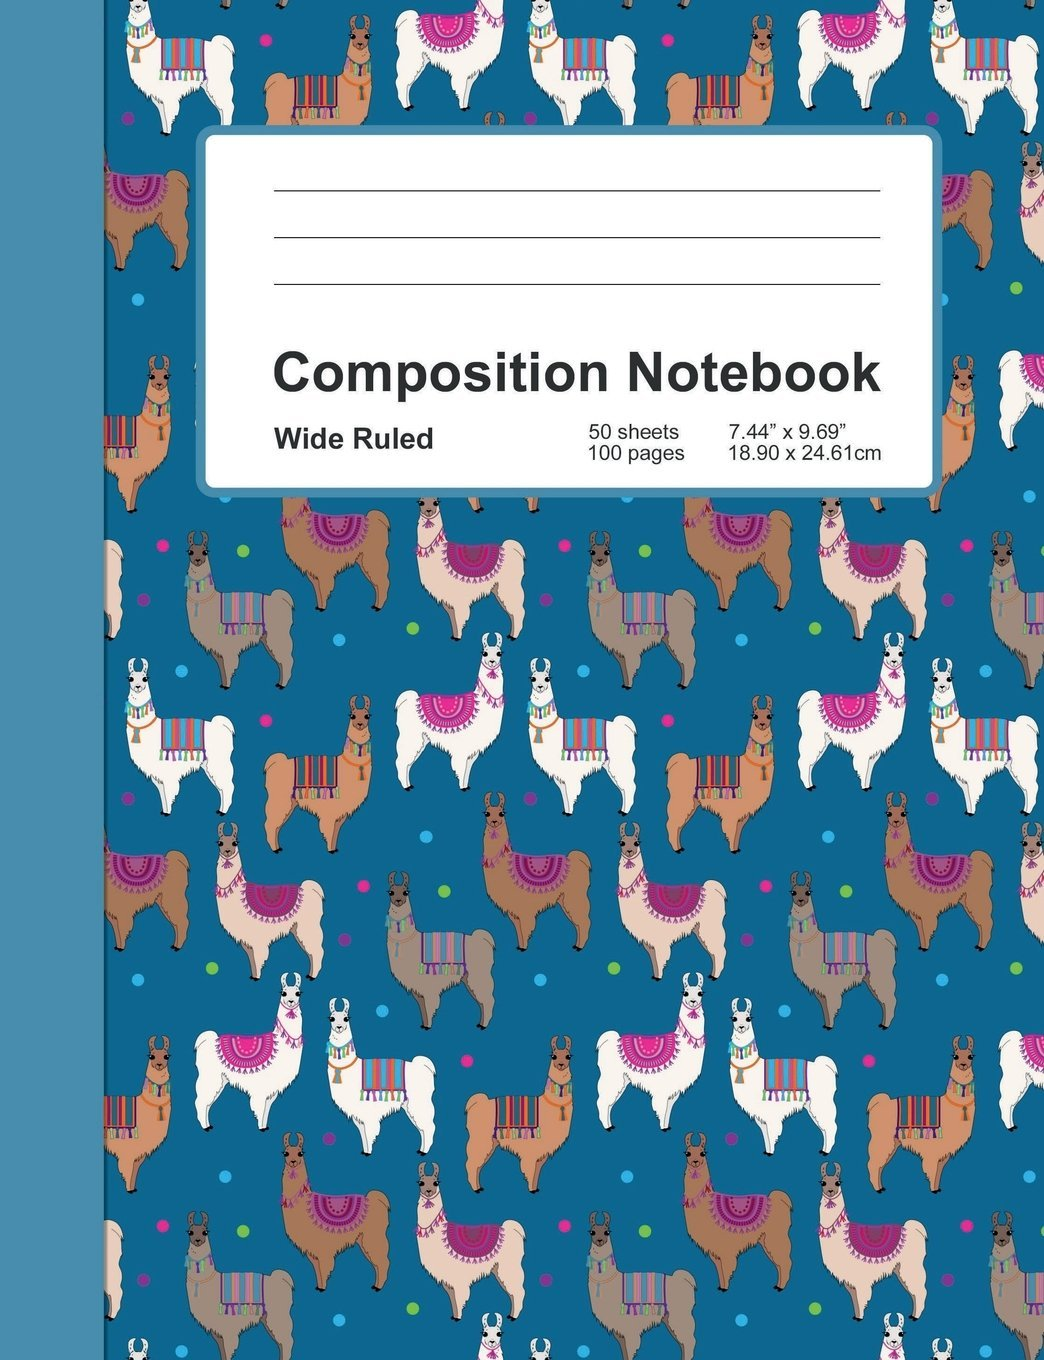 """Read Online Composition Notebook: Llama Pattern - Wide Ruled :: Softcover Book - Home Office, School, Girl Student Teacher, Class Assignments, Writing Paper :: 7.44"""" x 9.69"""" - 100 lined pages -  50 sheets PDF"""